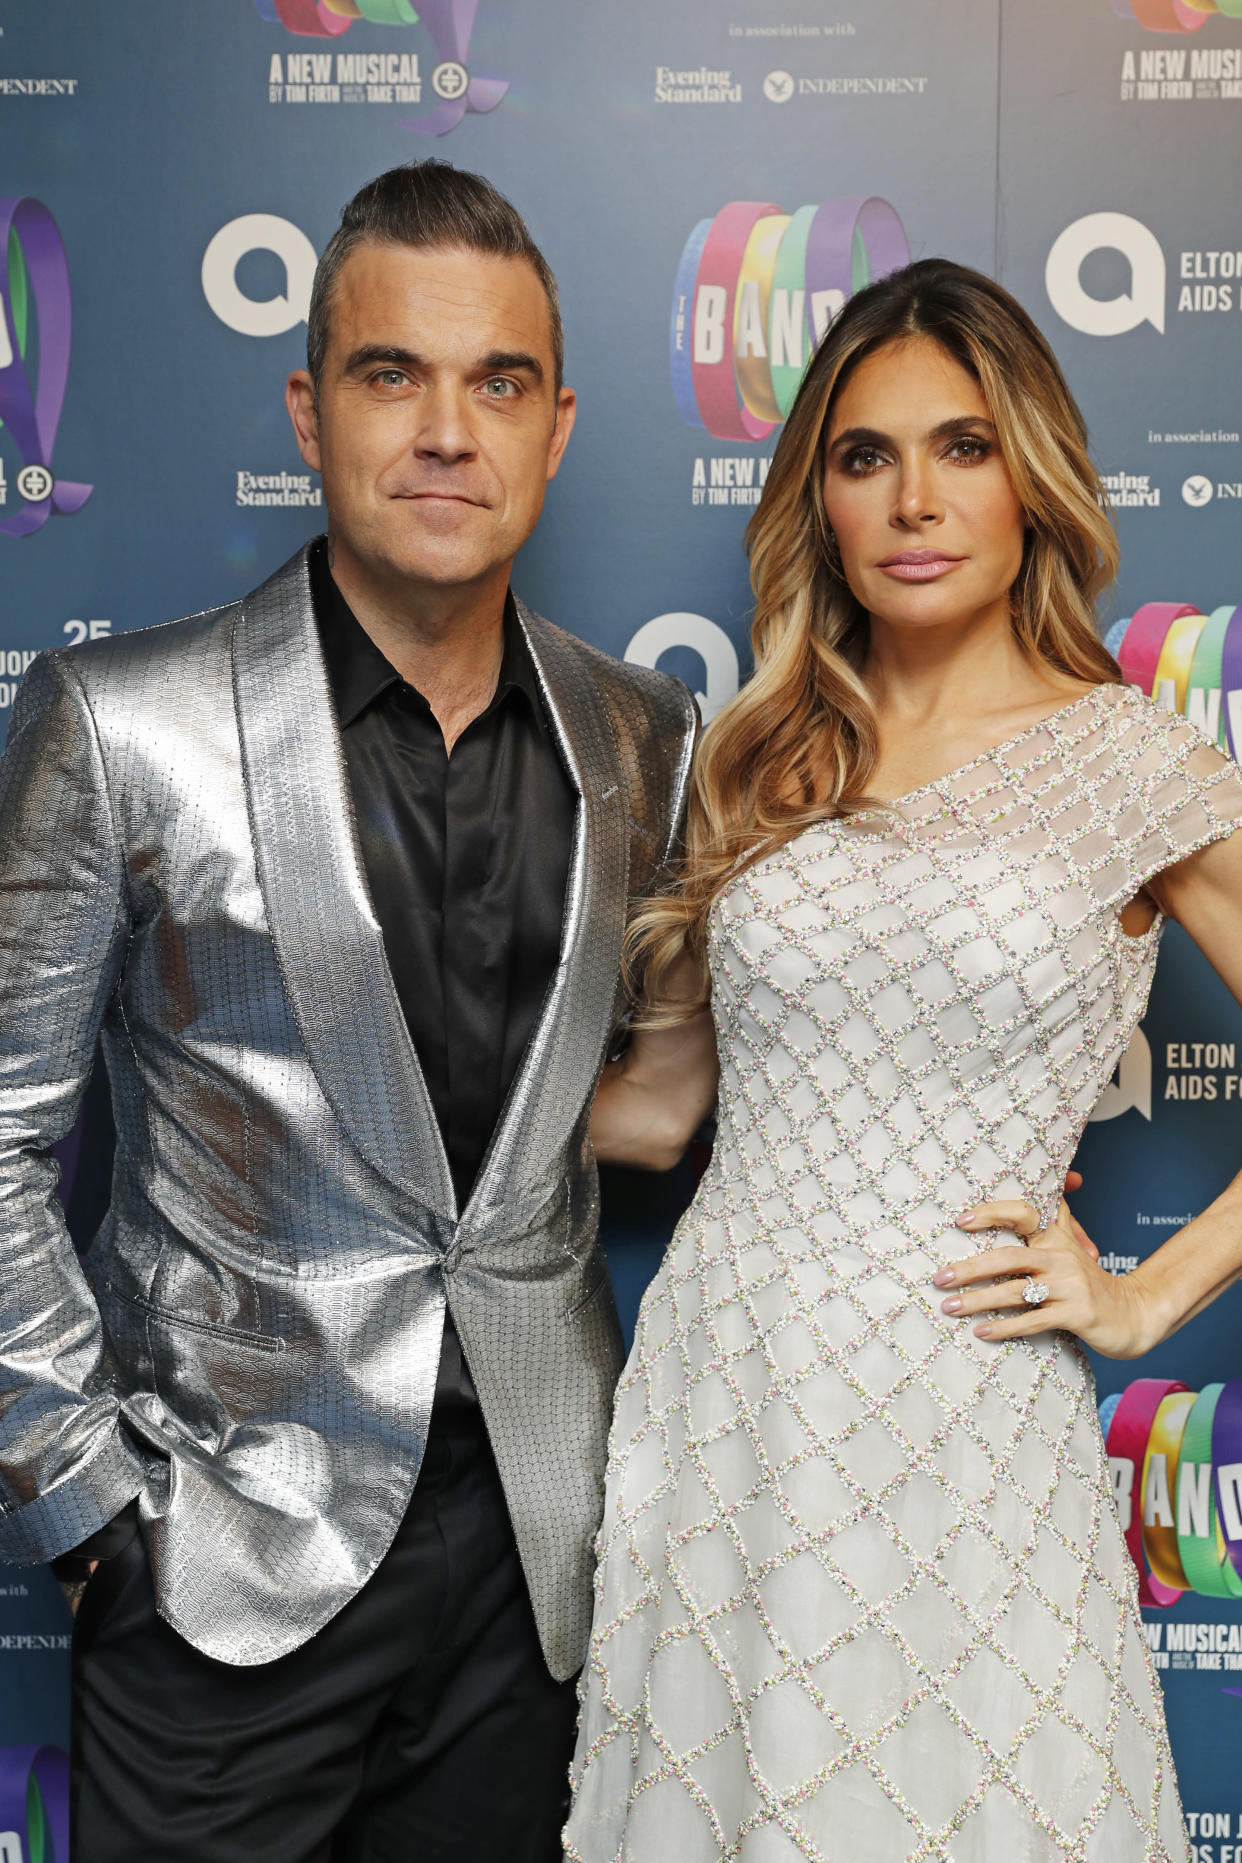 Robbie Williams and Ayda Field attend  the Opening Night Gala of